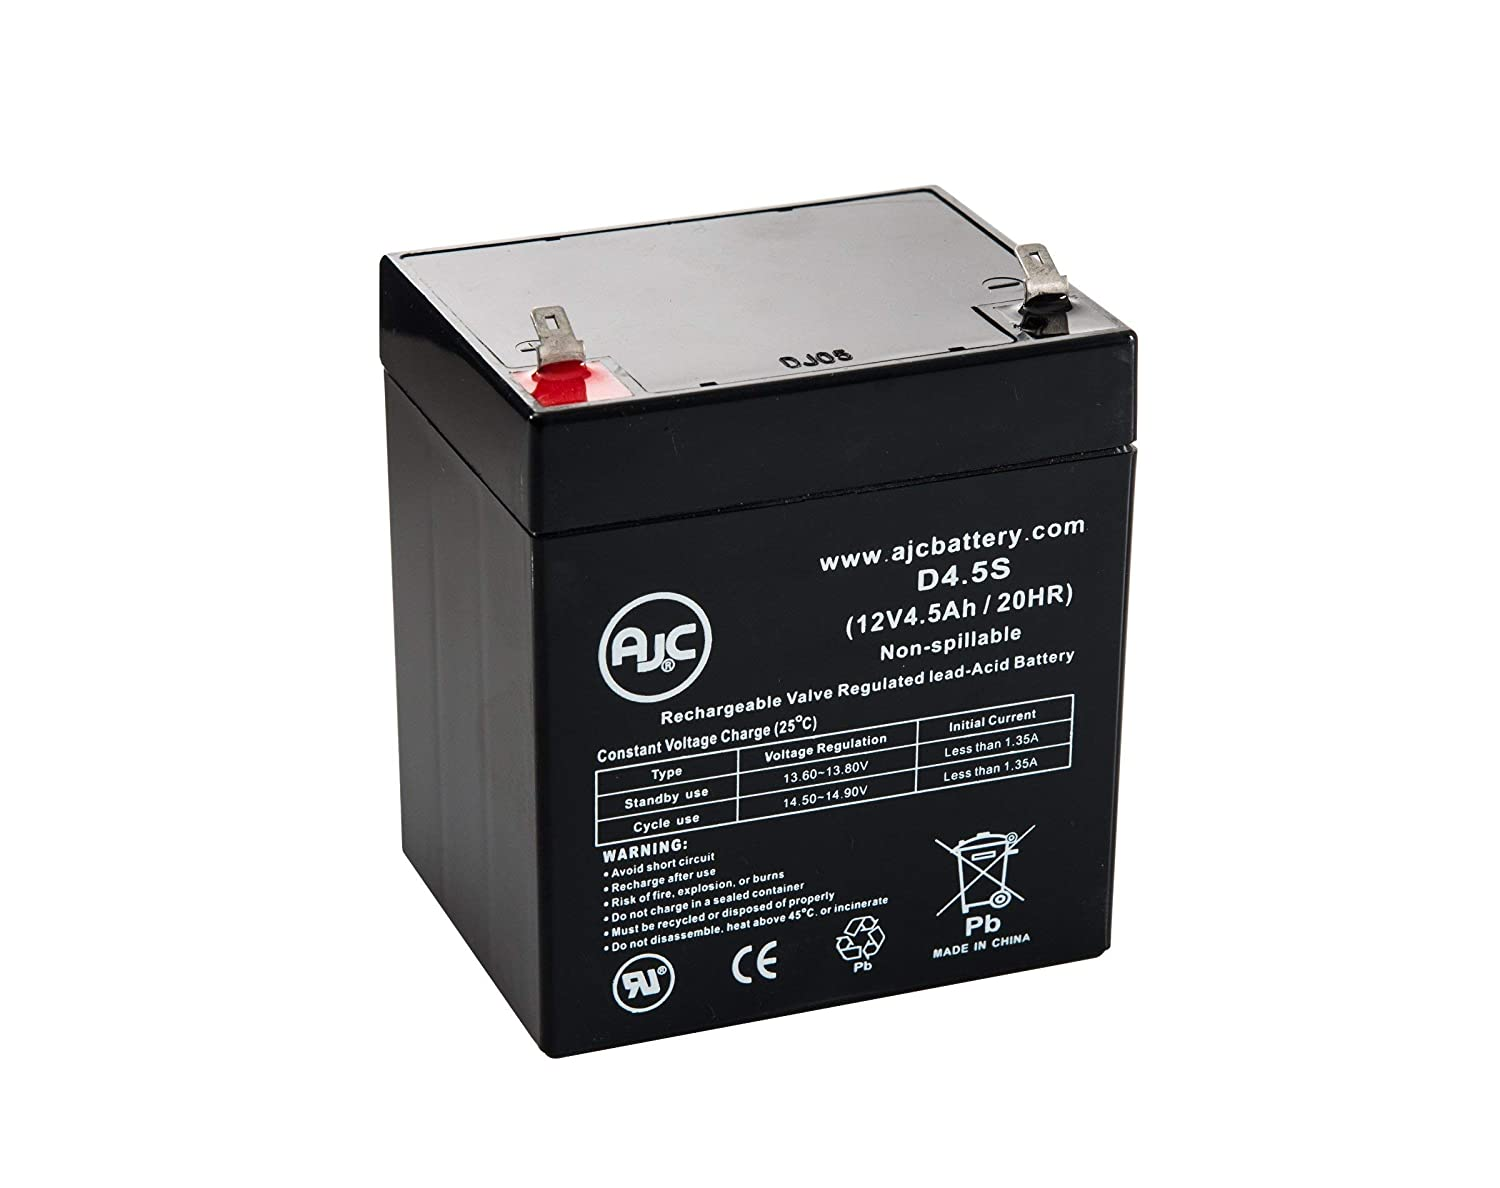 Securitron 12V 4.5Ah 12V 4.5Ah Alarm Battery - This is an AJC Brand Replacement AJC Battery 12V 4Ah